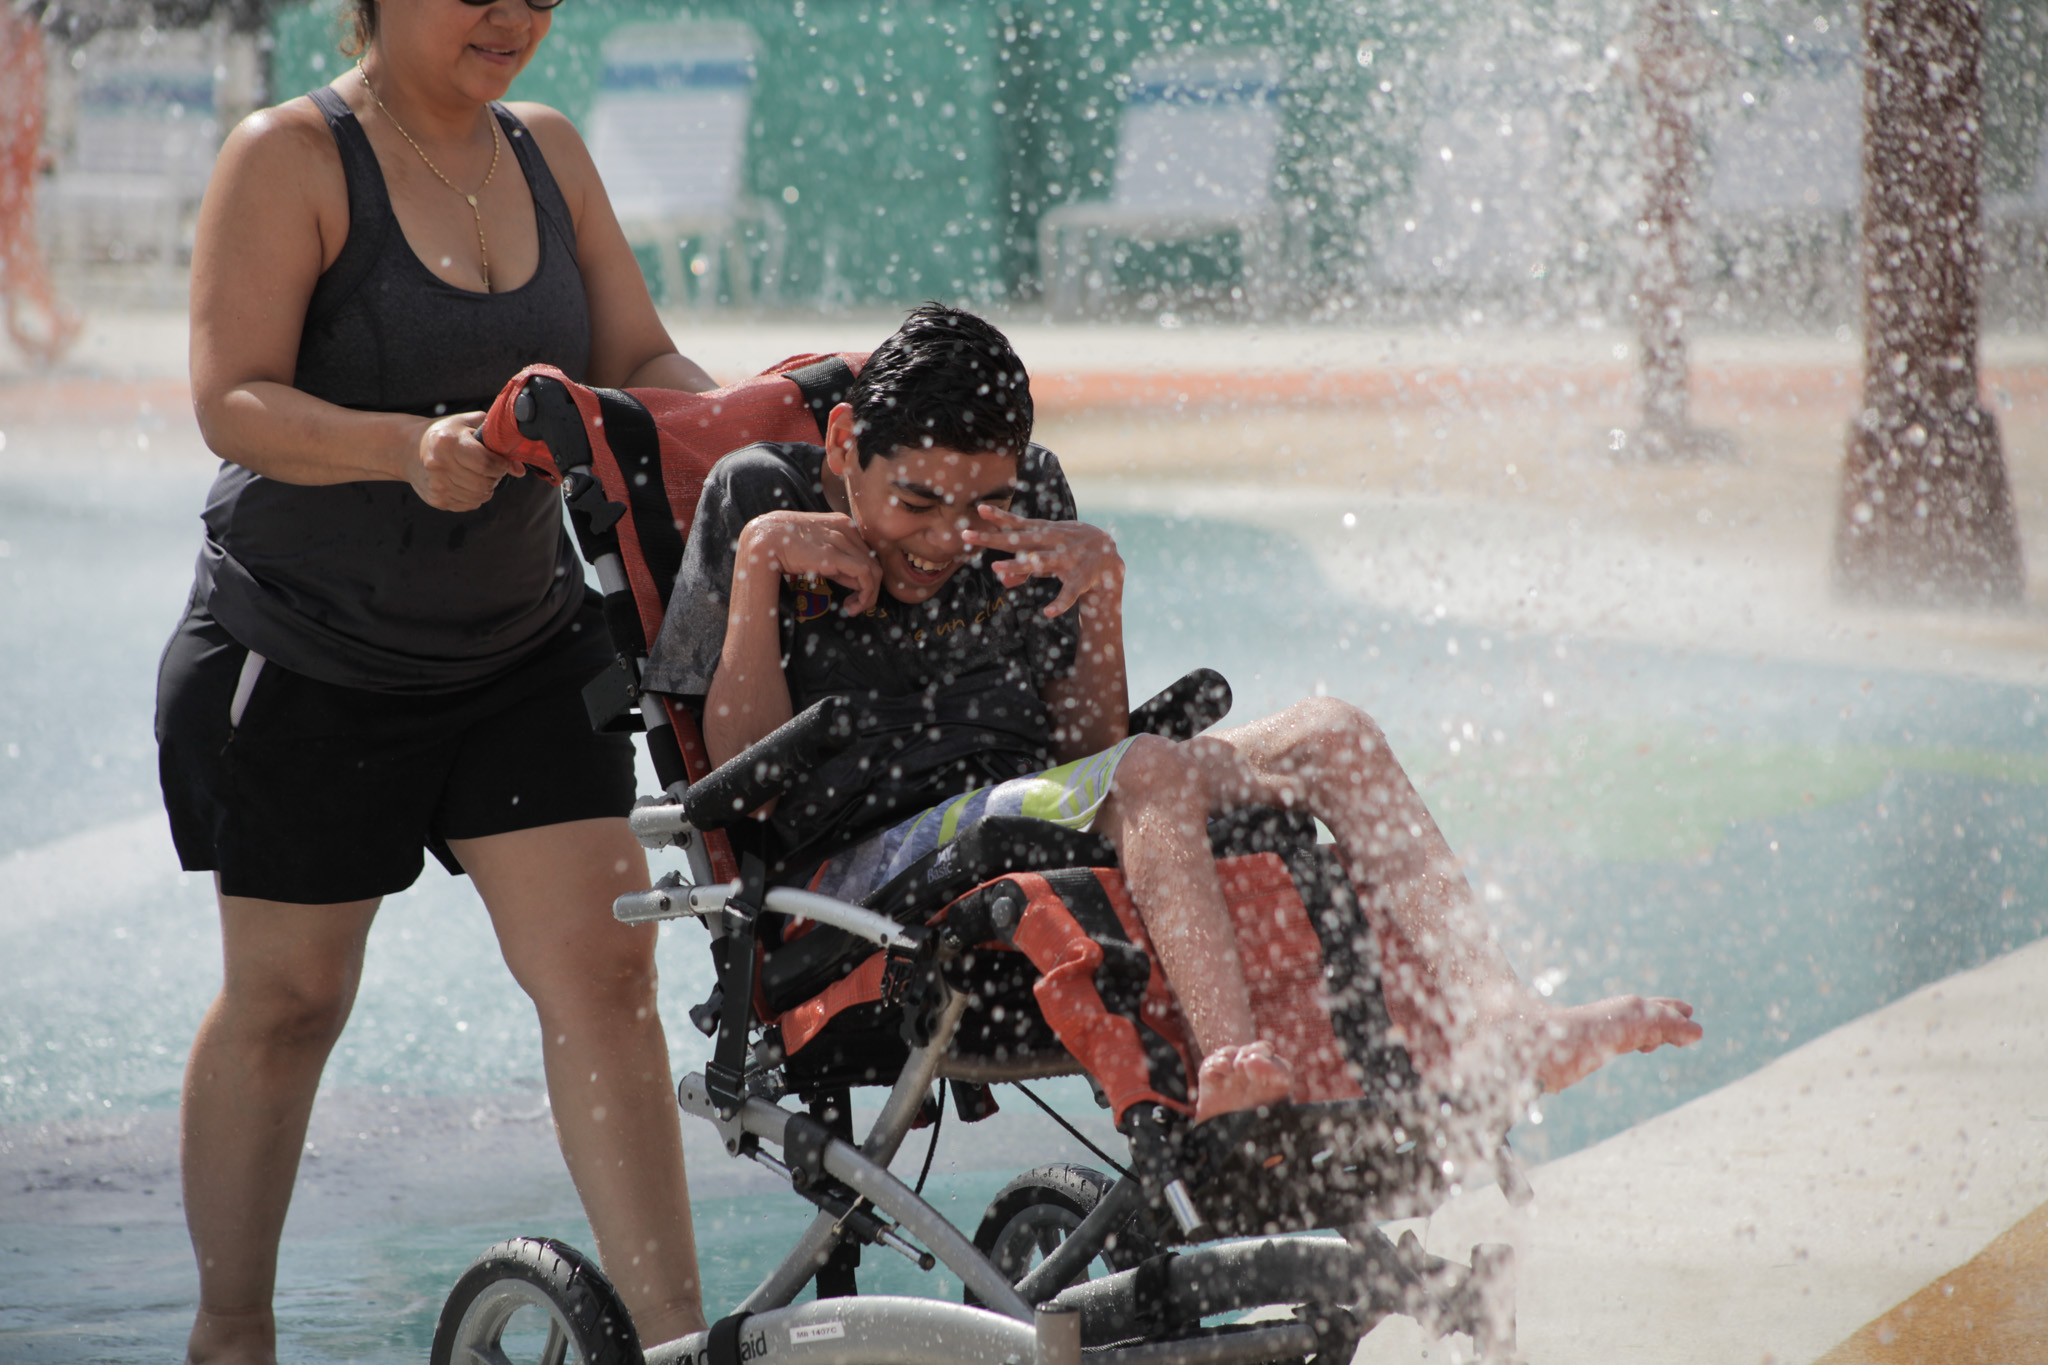 Diego Guzmán age 14 wipes water from his eyes the new waterpark at Morgan's Inspiration Island.